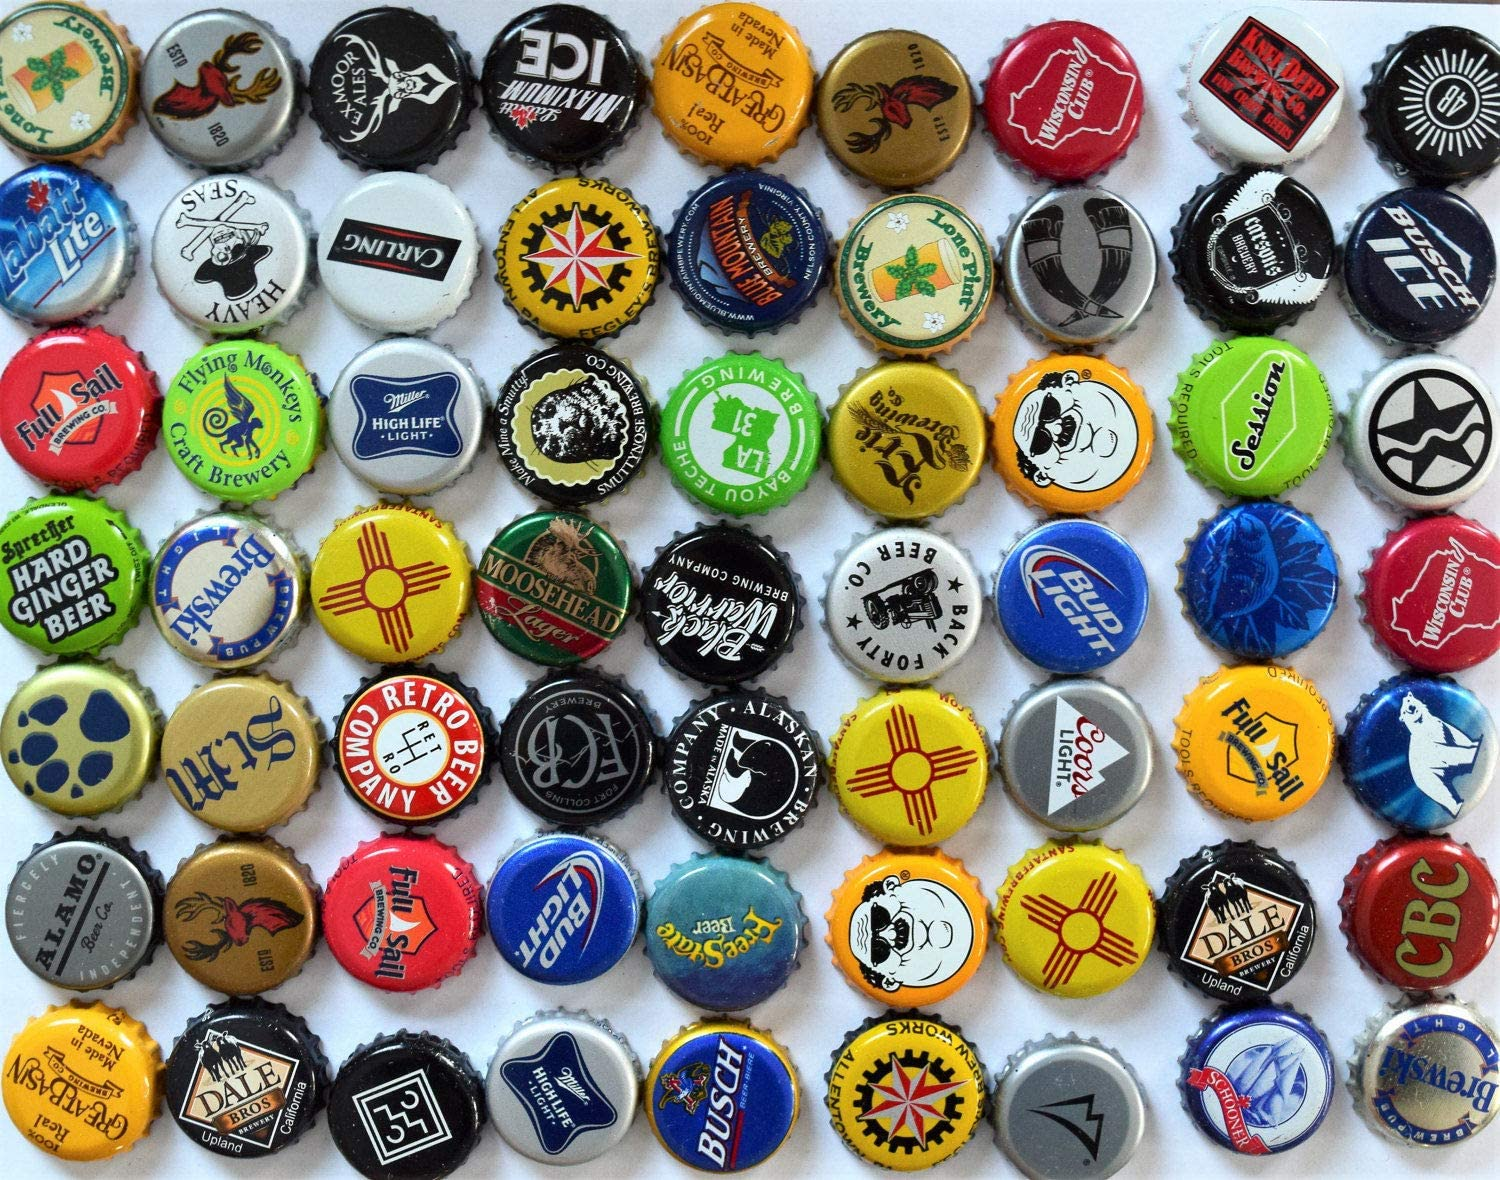 100 BEER.COM BEER BOTTLE CAPS BRIGHT BLUE NO DENTS RARE THE PARTY STARTS HERE